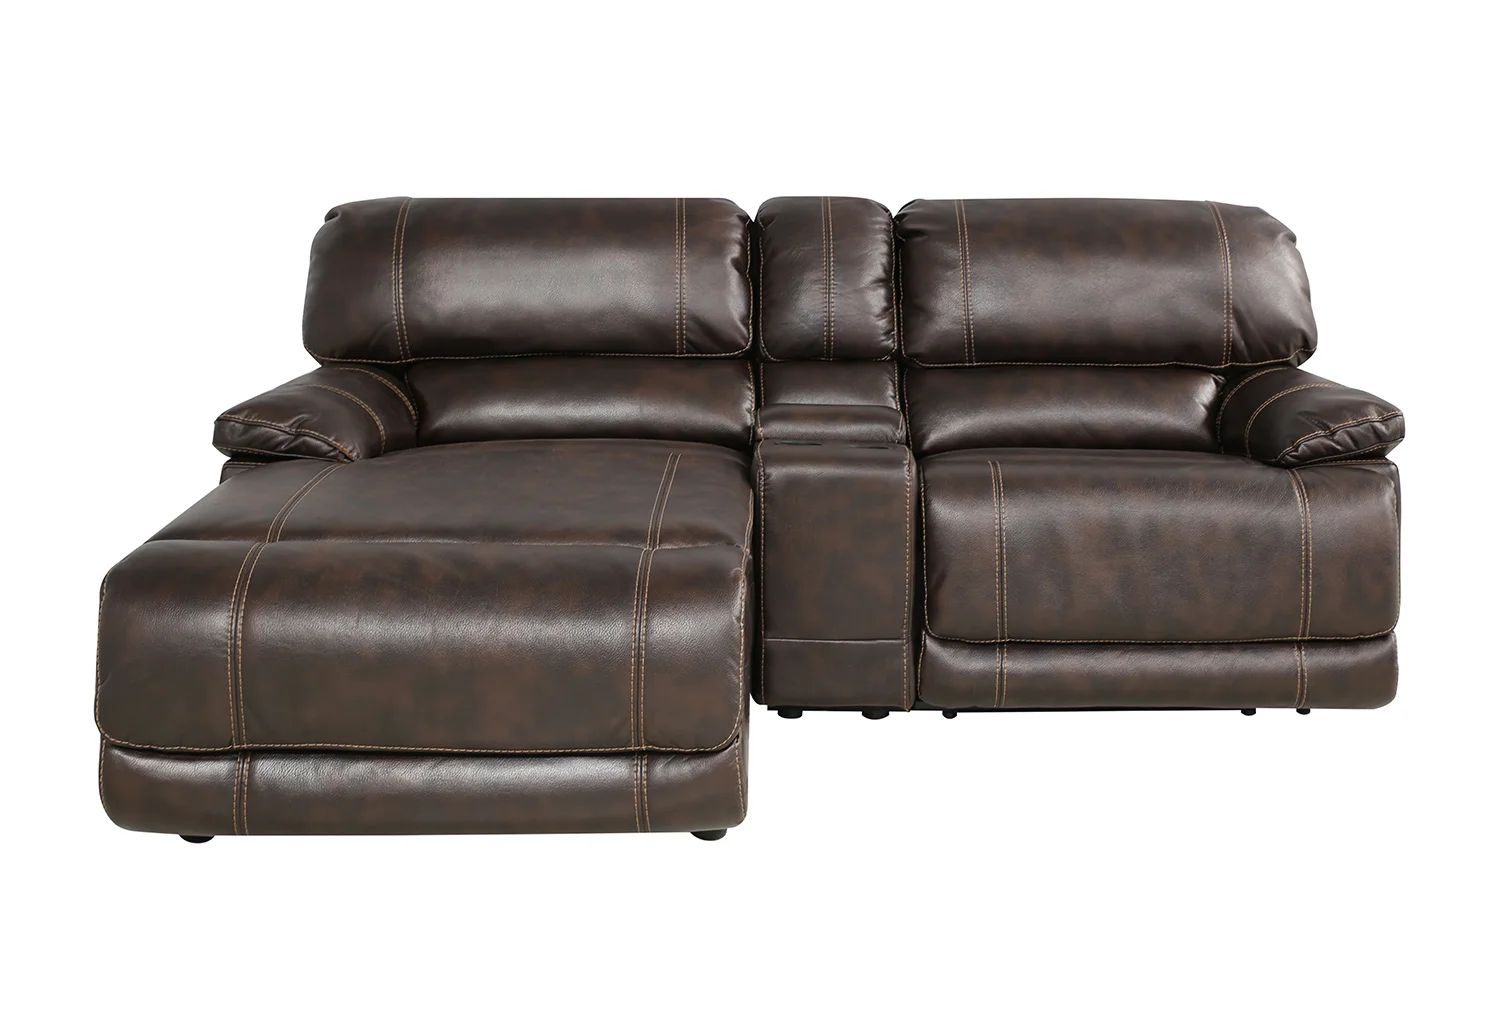 3 piece reclining sectional left side chaise console